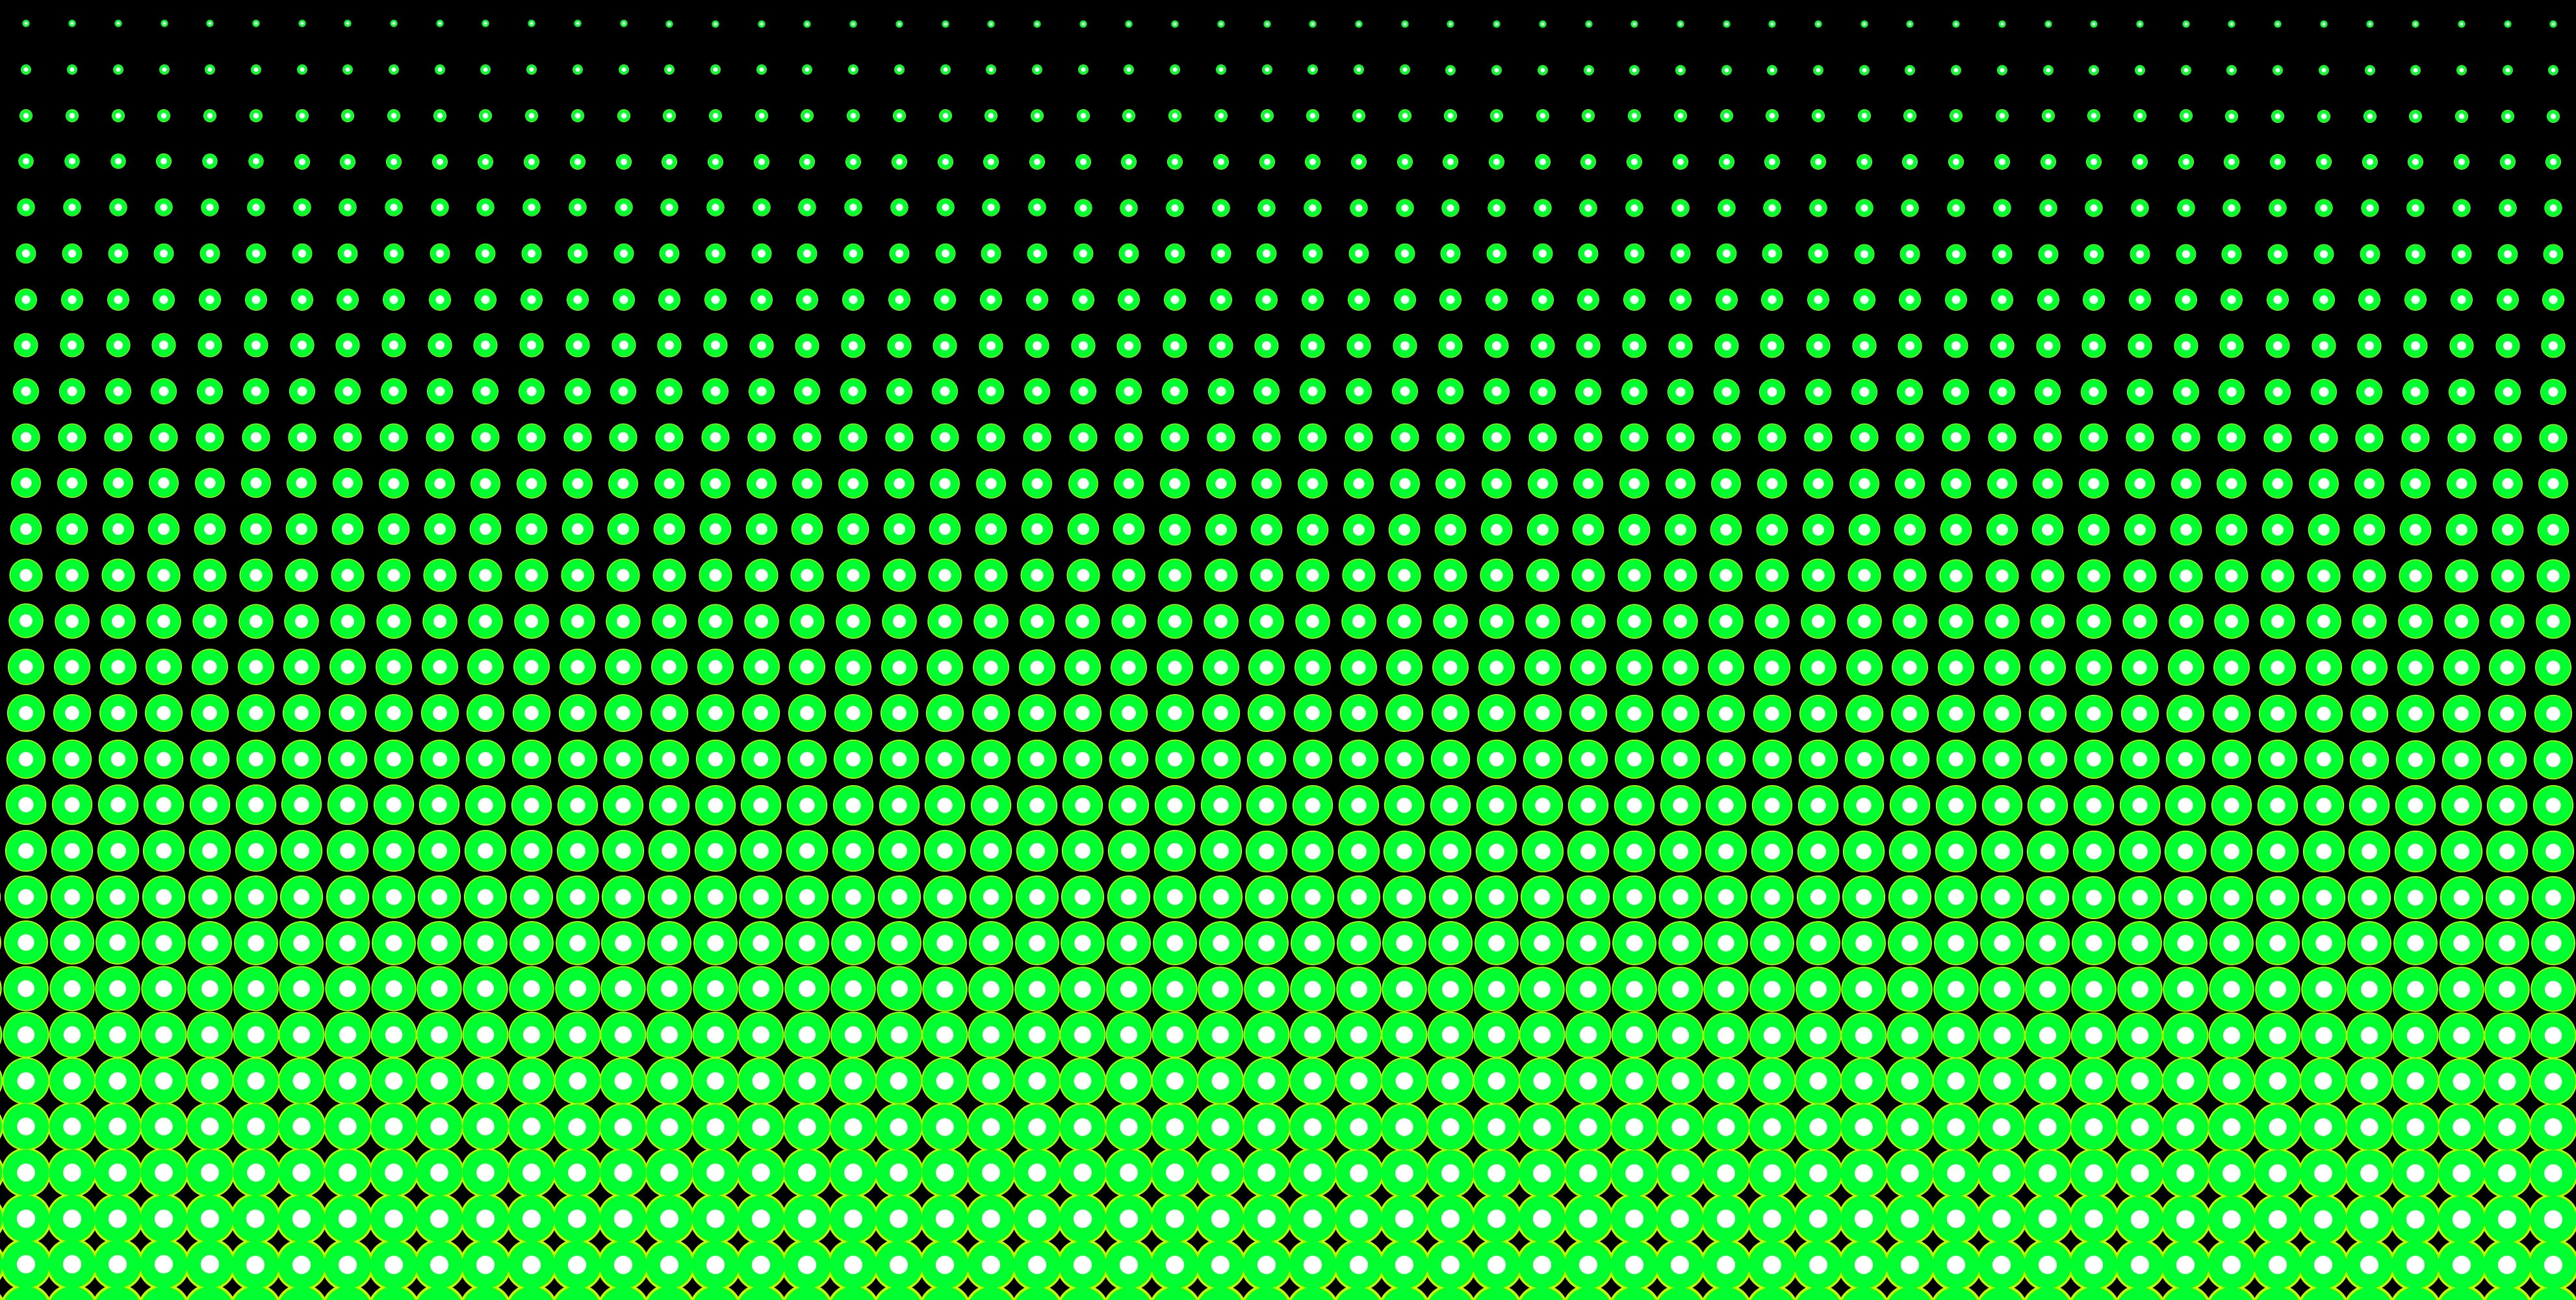 neon green and black halftone pattern - free clip art